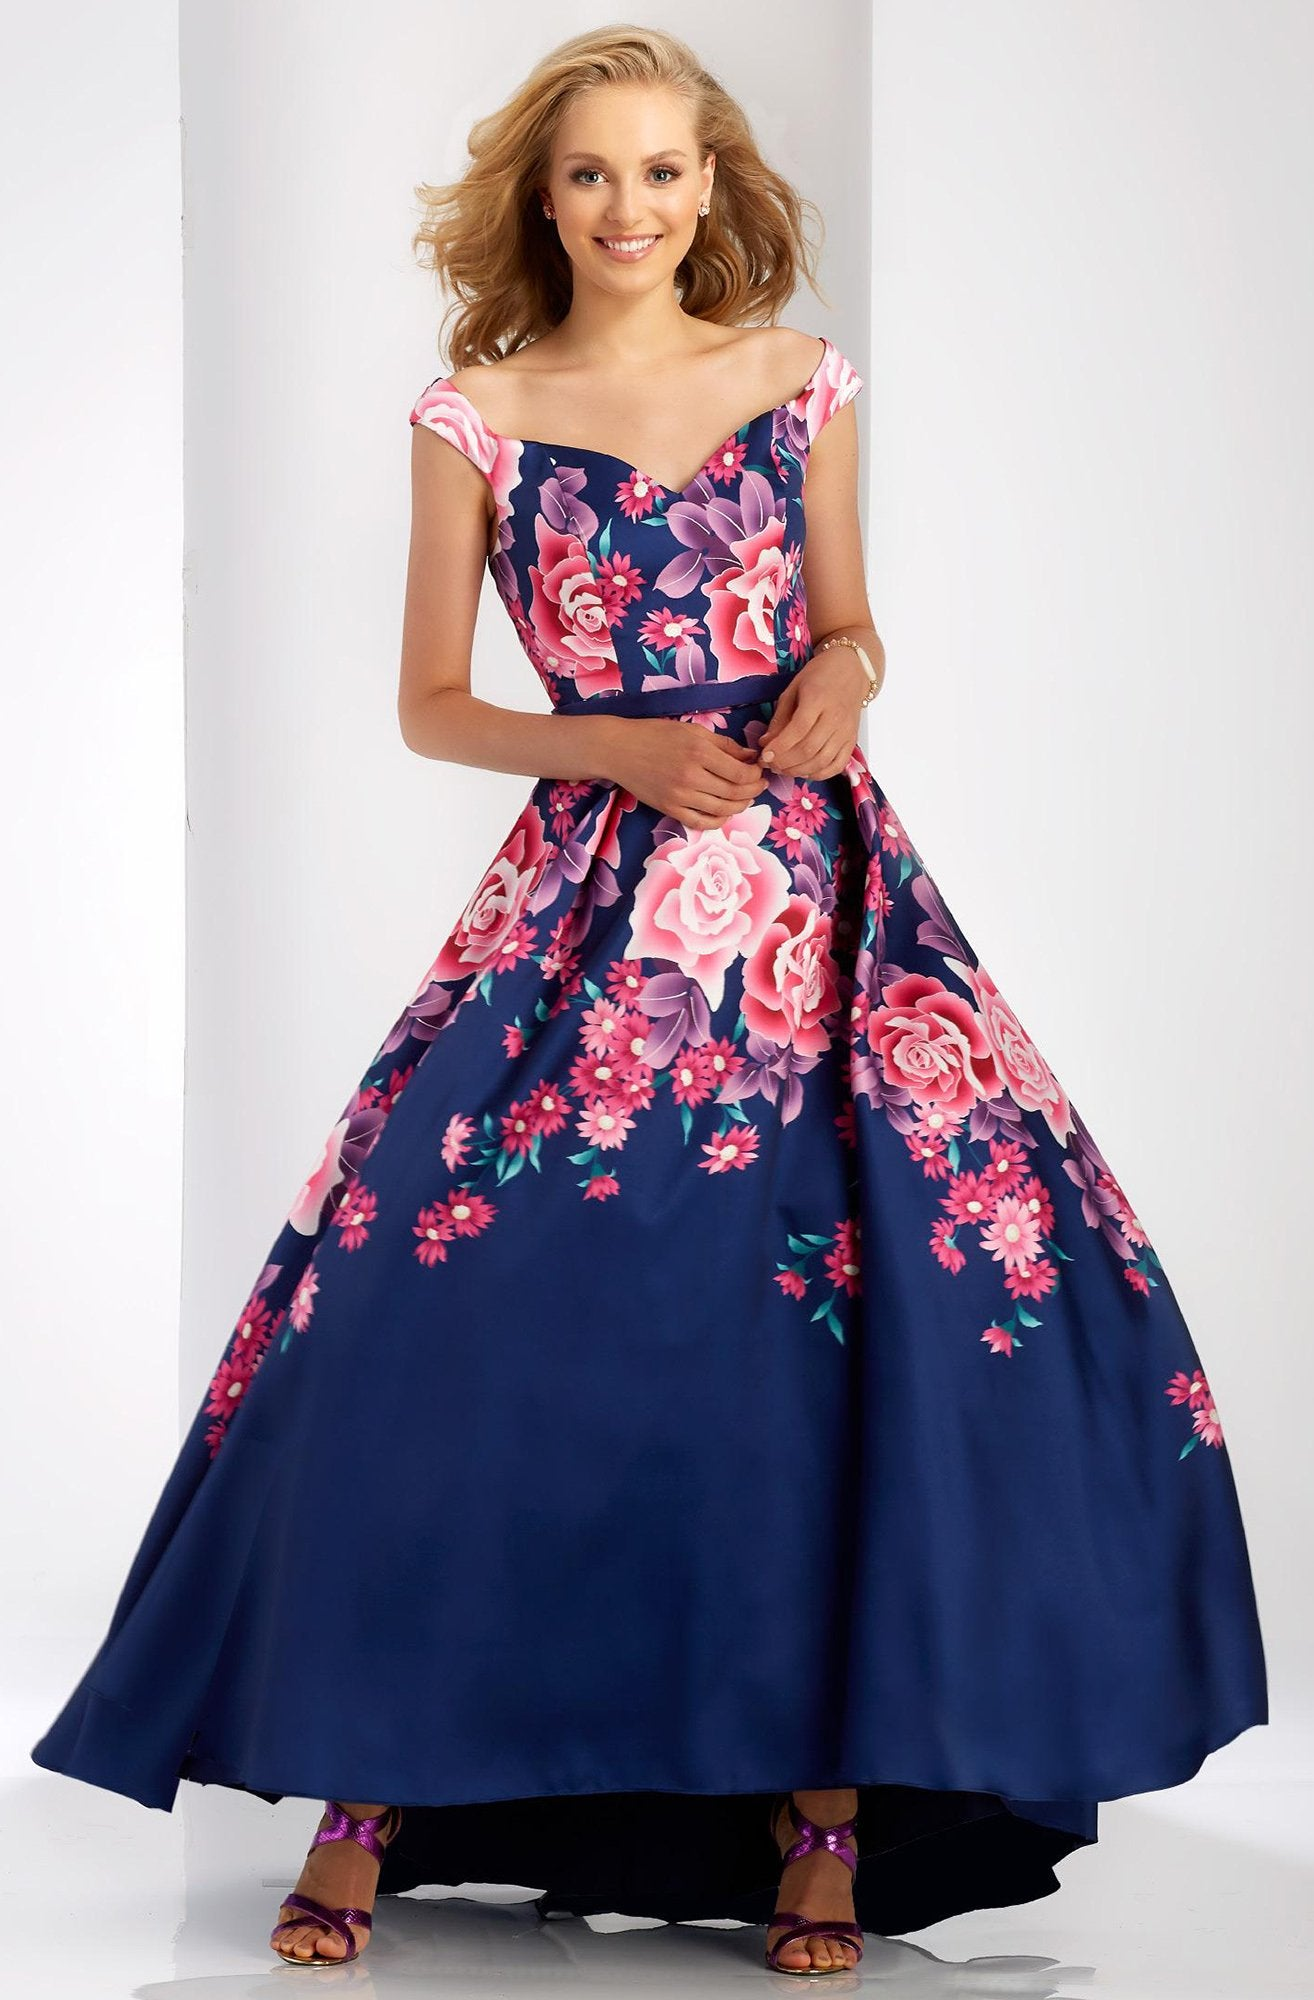 Clarisse - 3569 Off the Shoulder High Low Evening Gown in Blue and Print